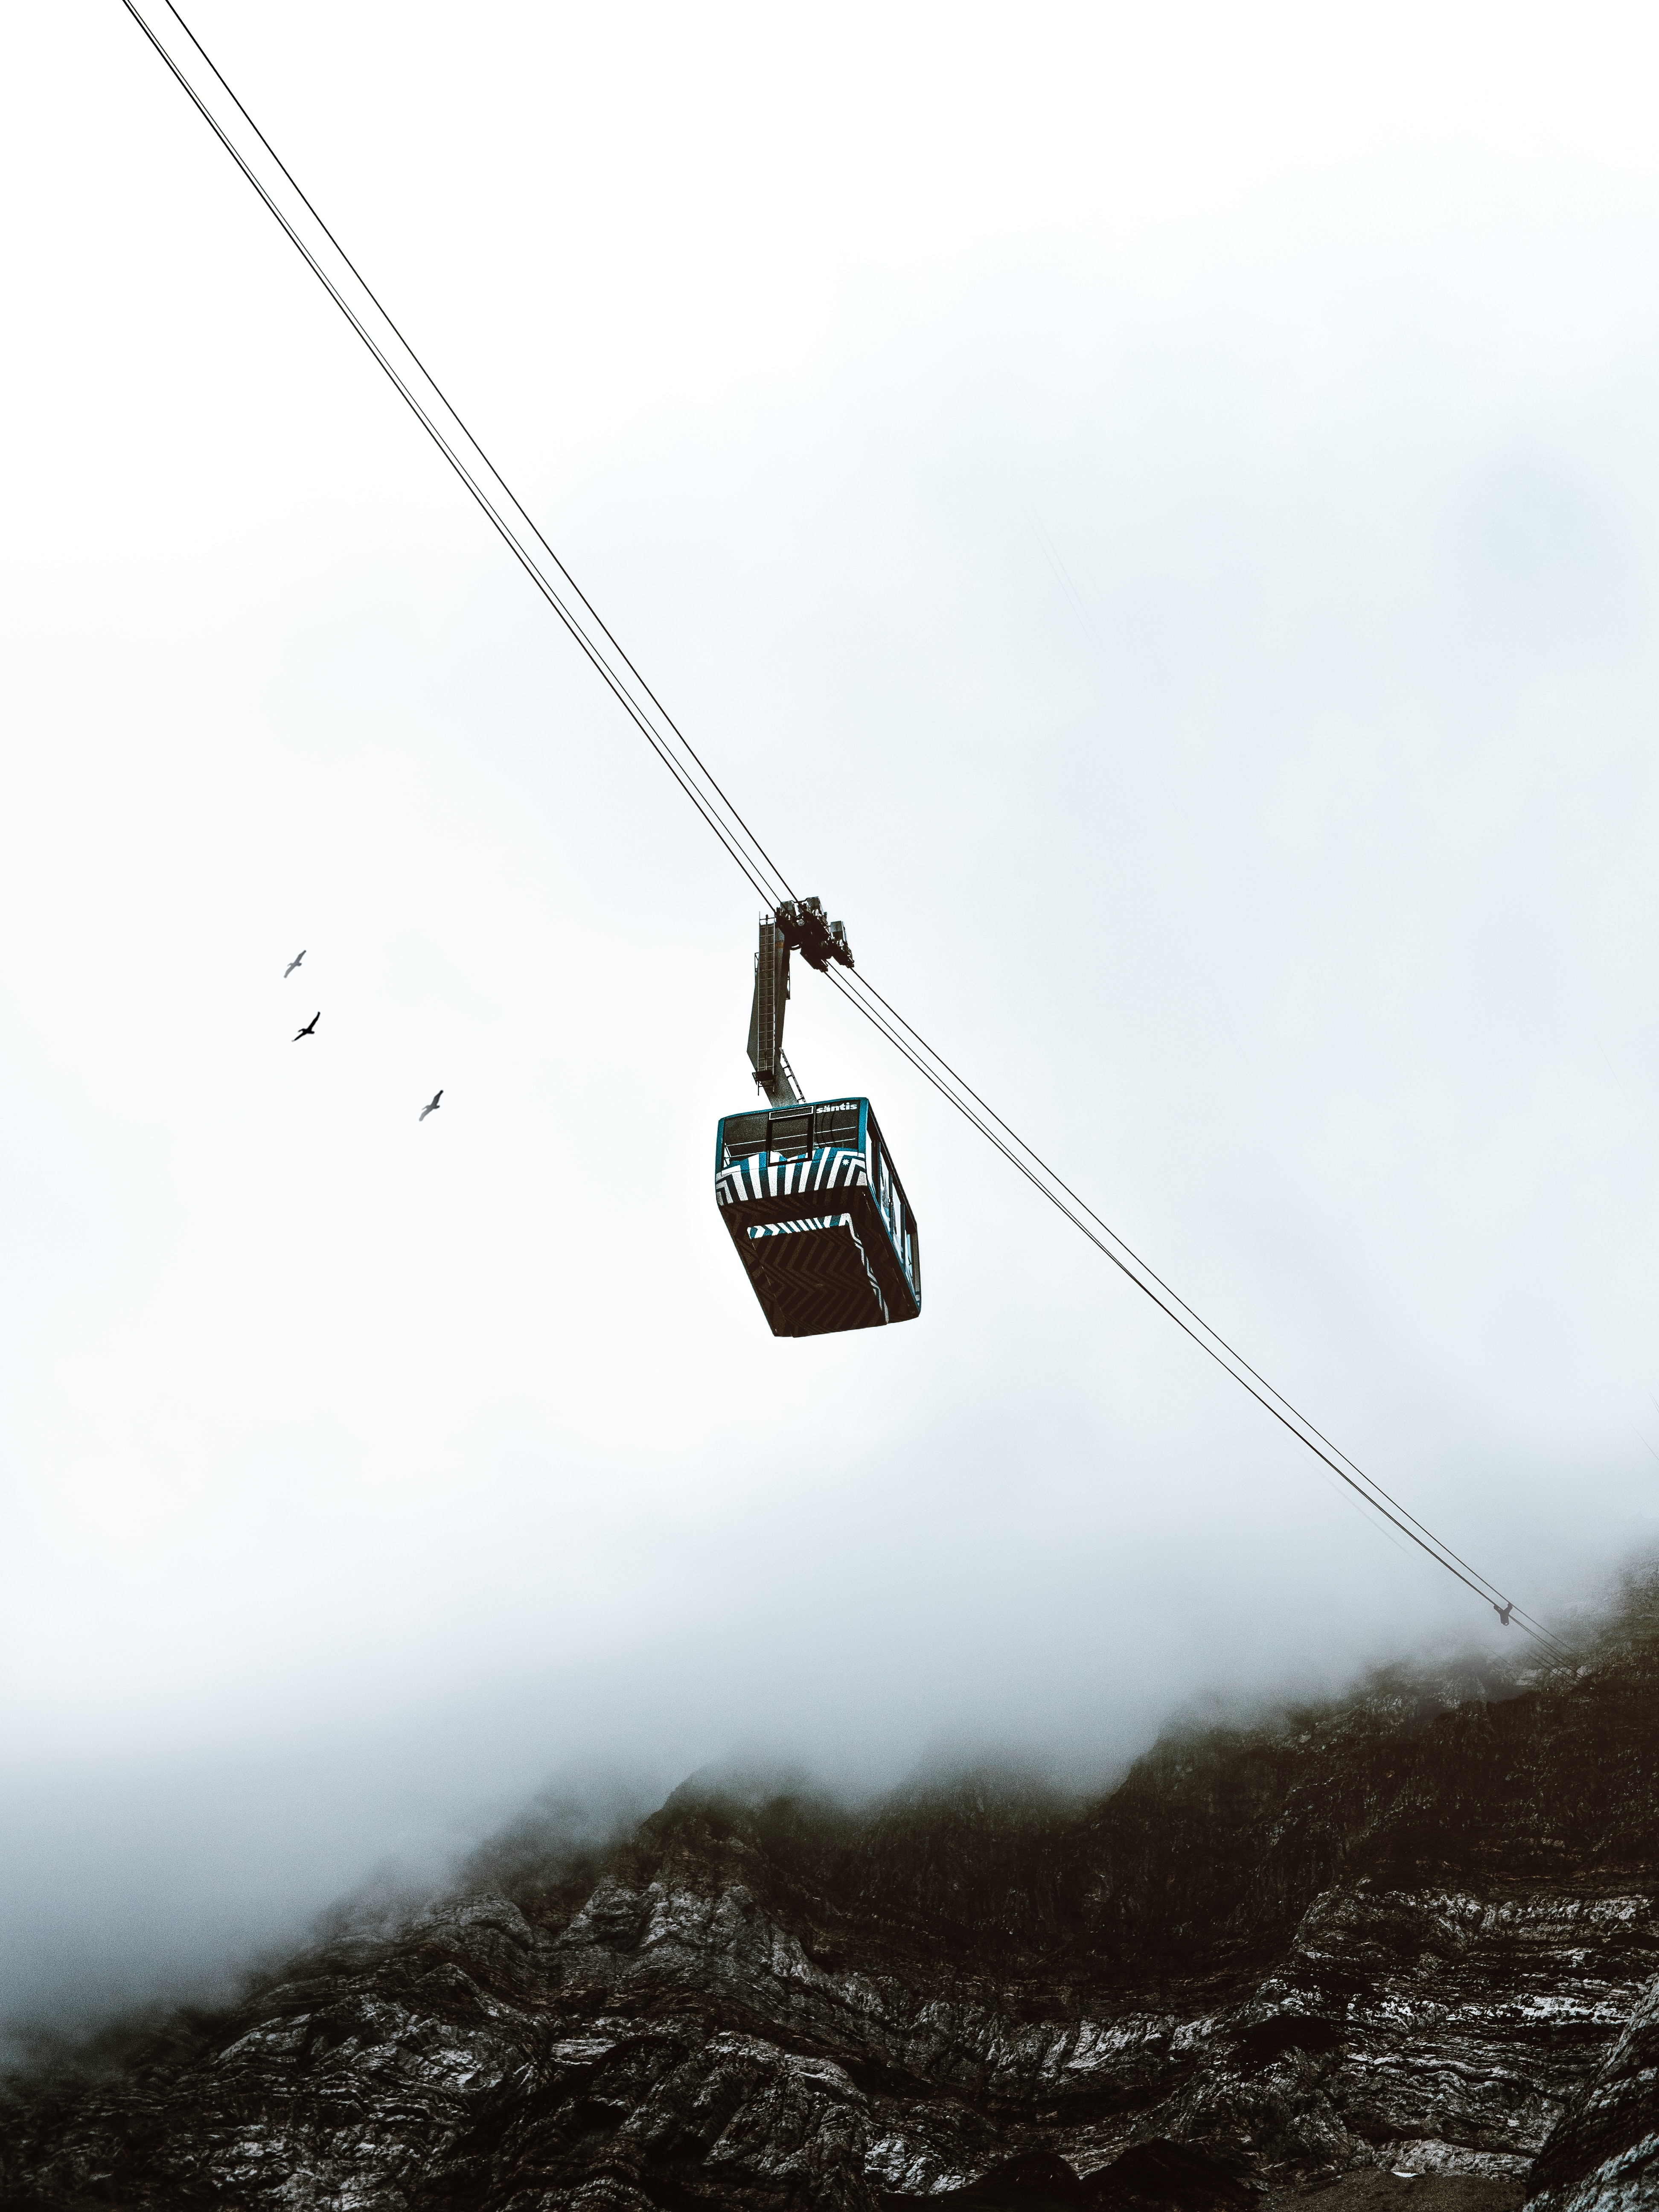 worm's eye view of cable tram under gray sky